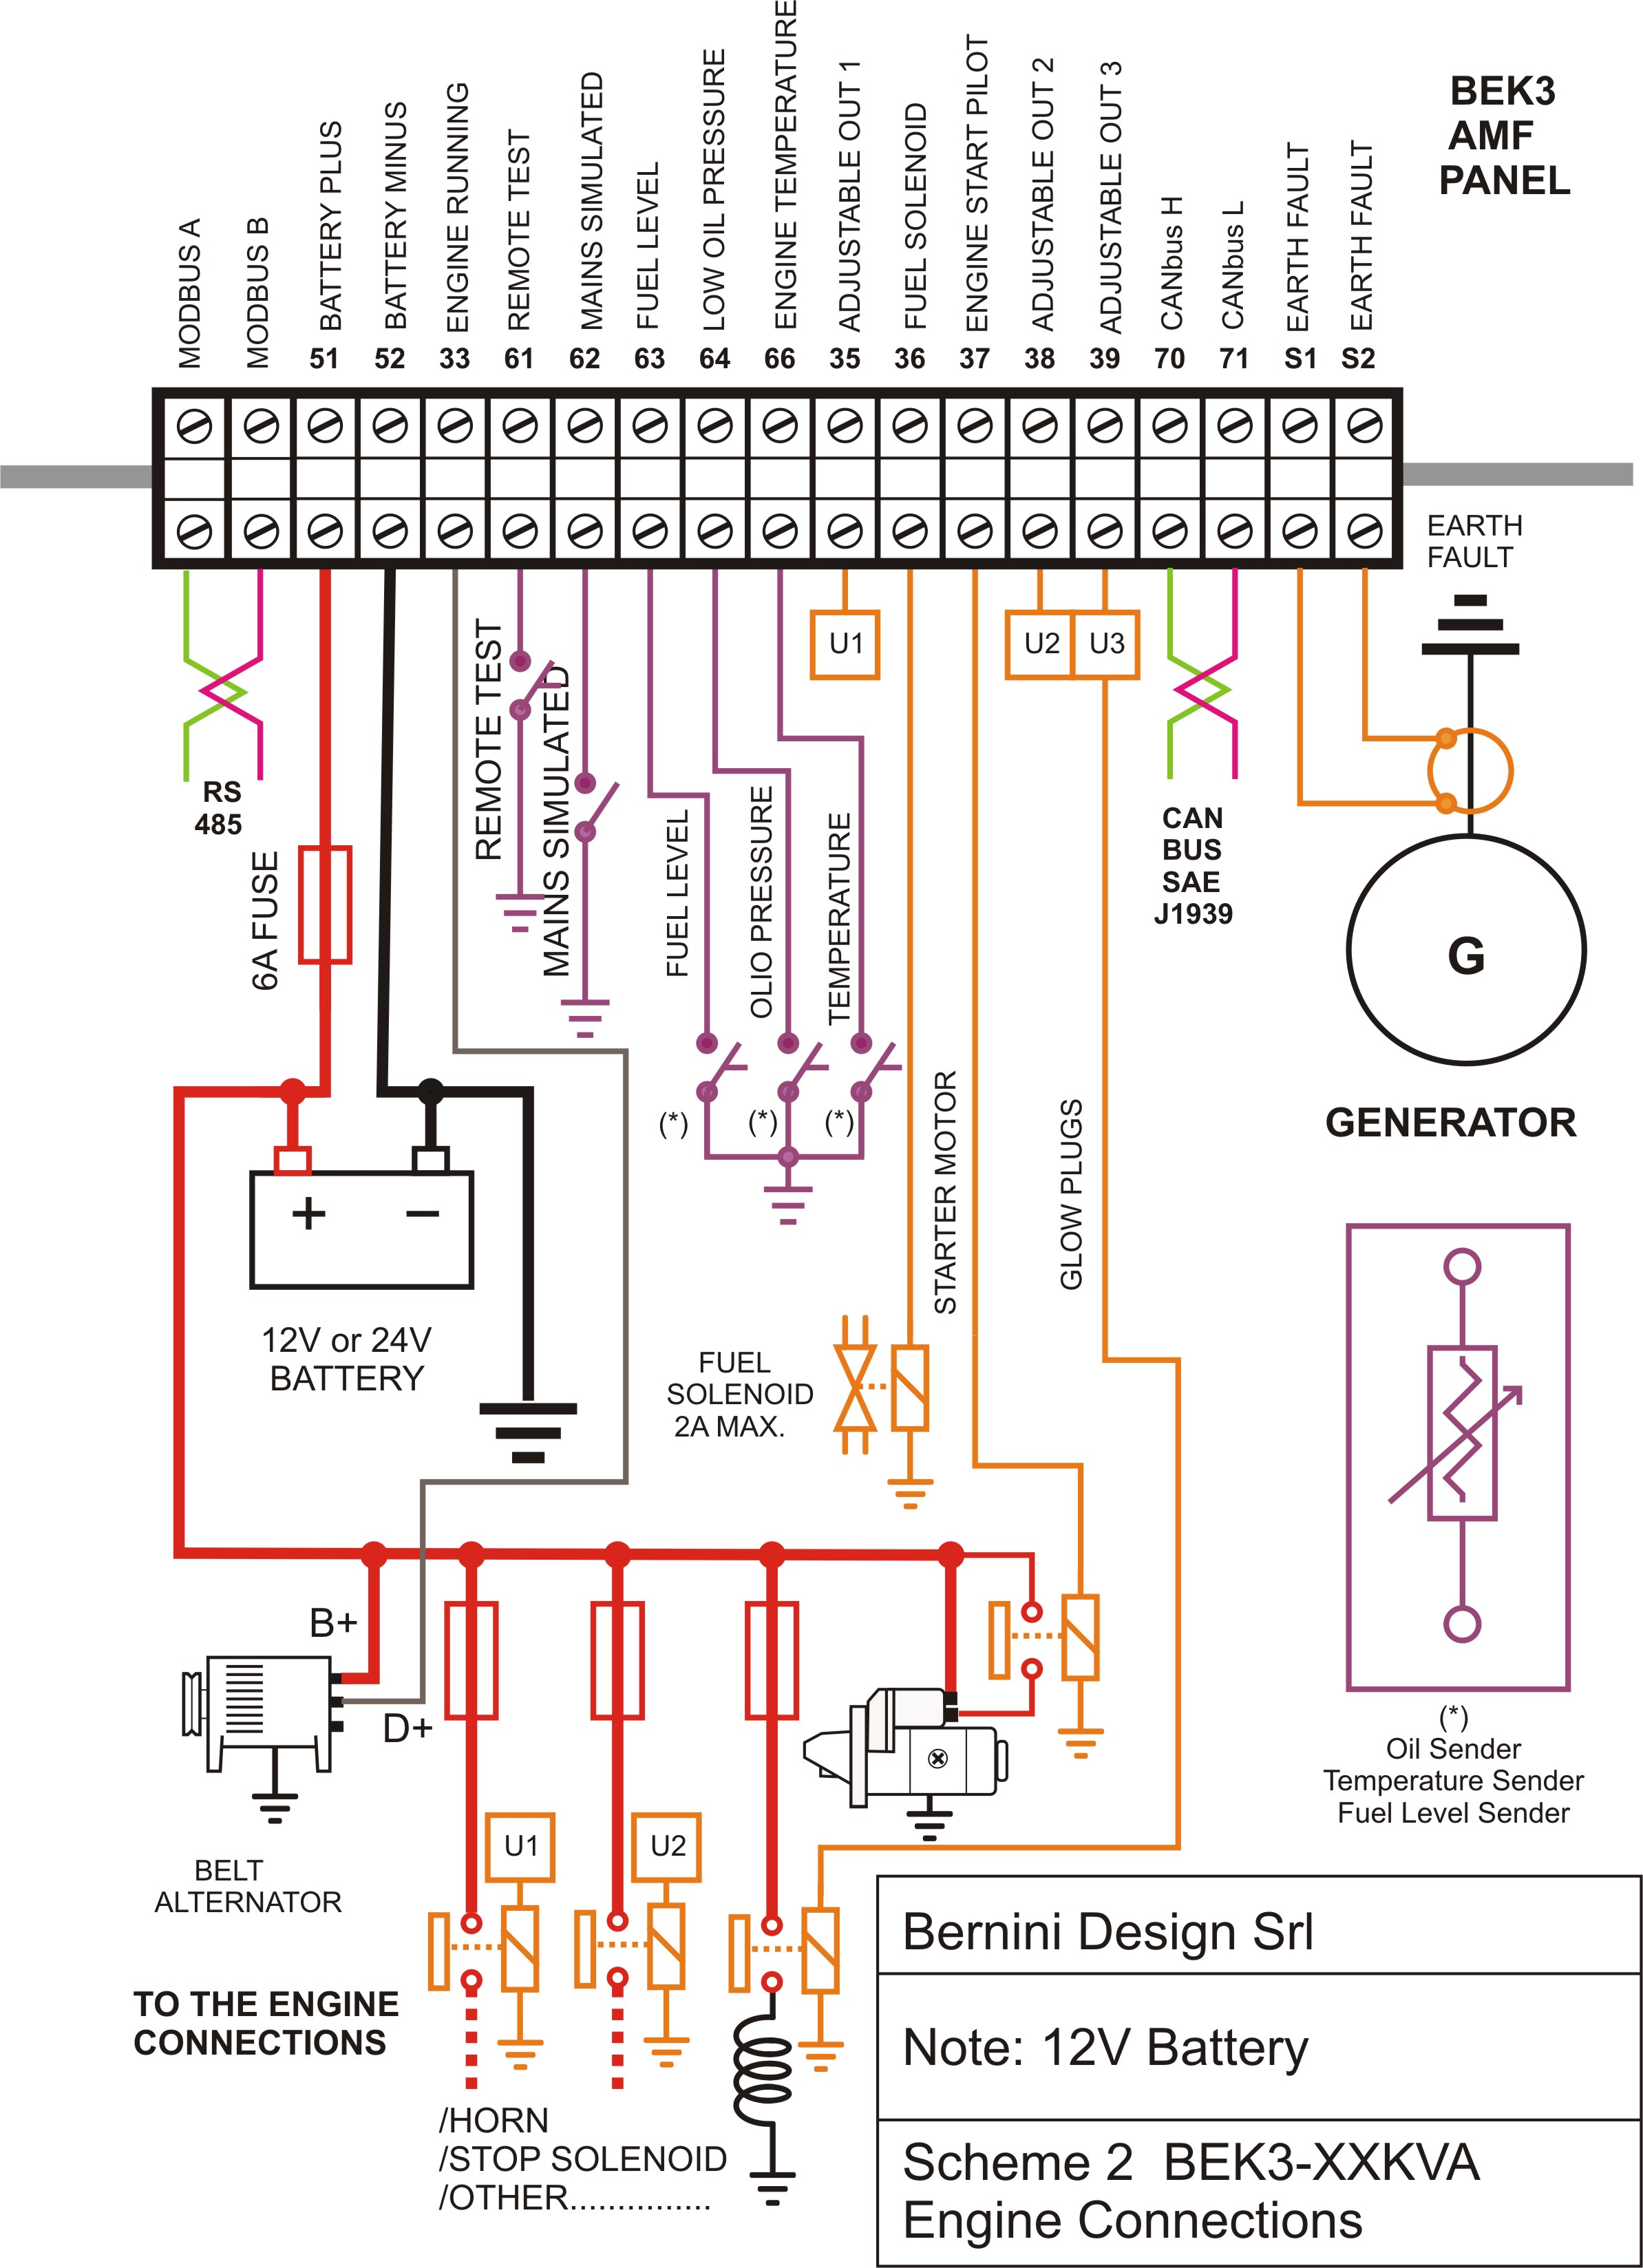 wiring diagram motor plant cell without labels electrical starter get free image